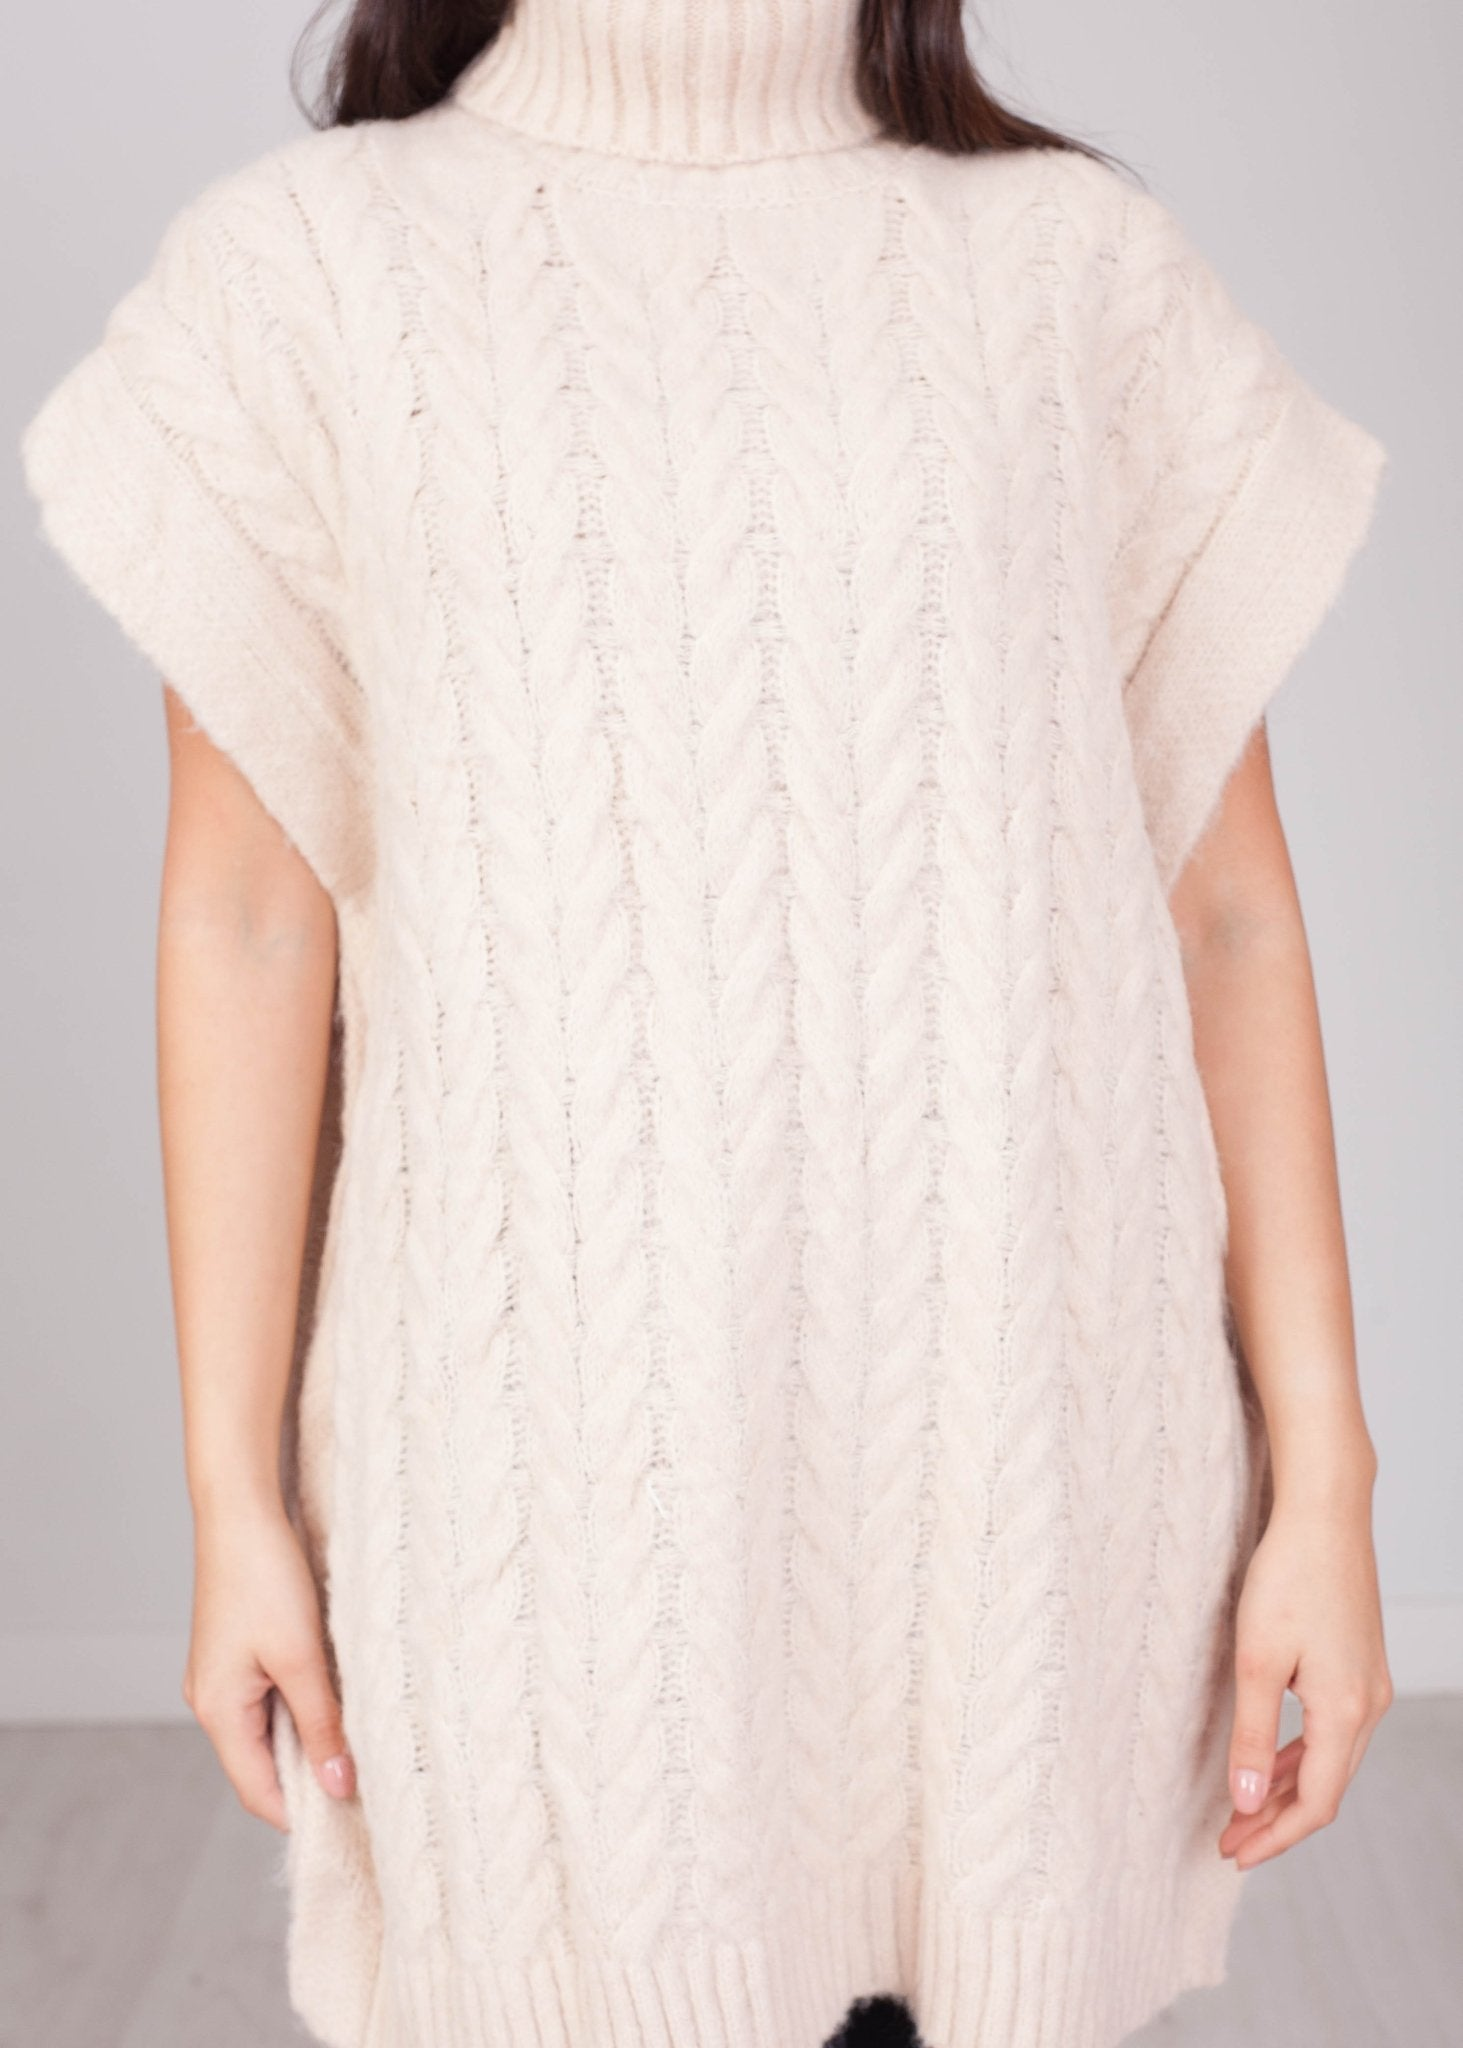 Elsa Cream Chunky Sleeveless Knit - The Walk in Wardrobe